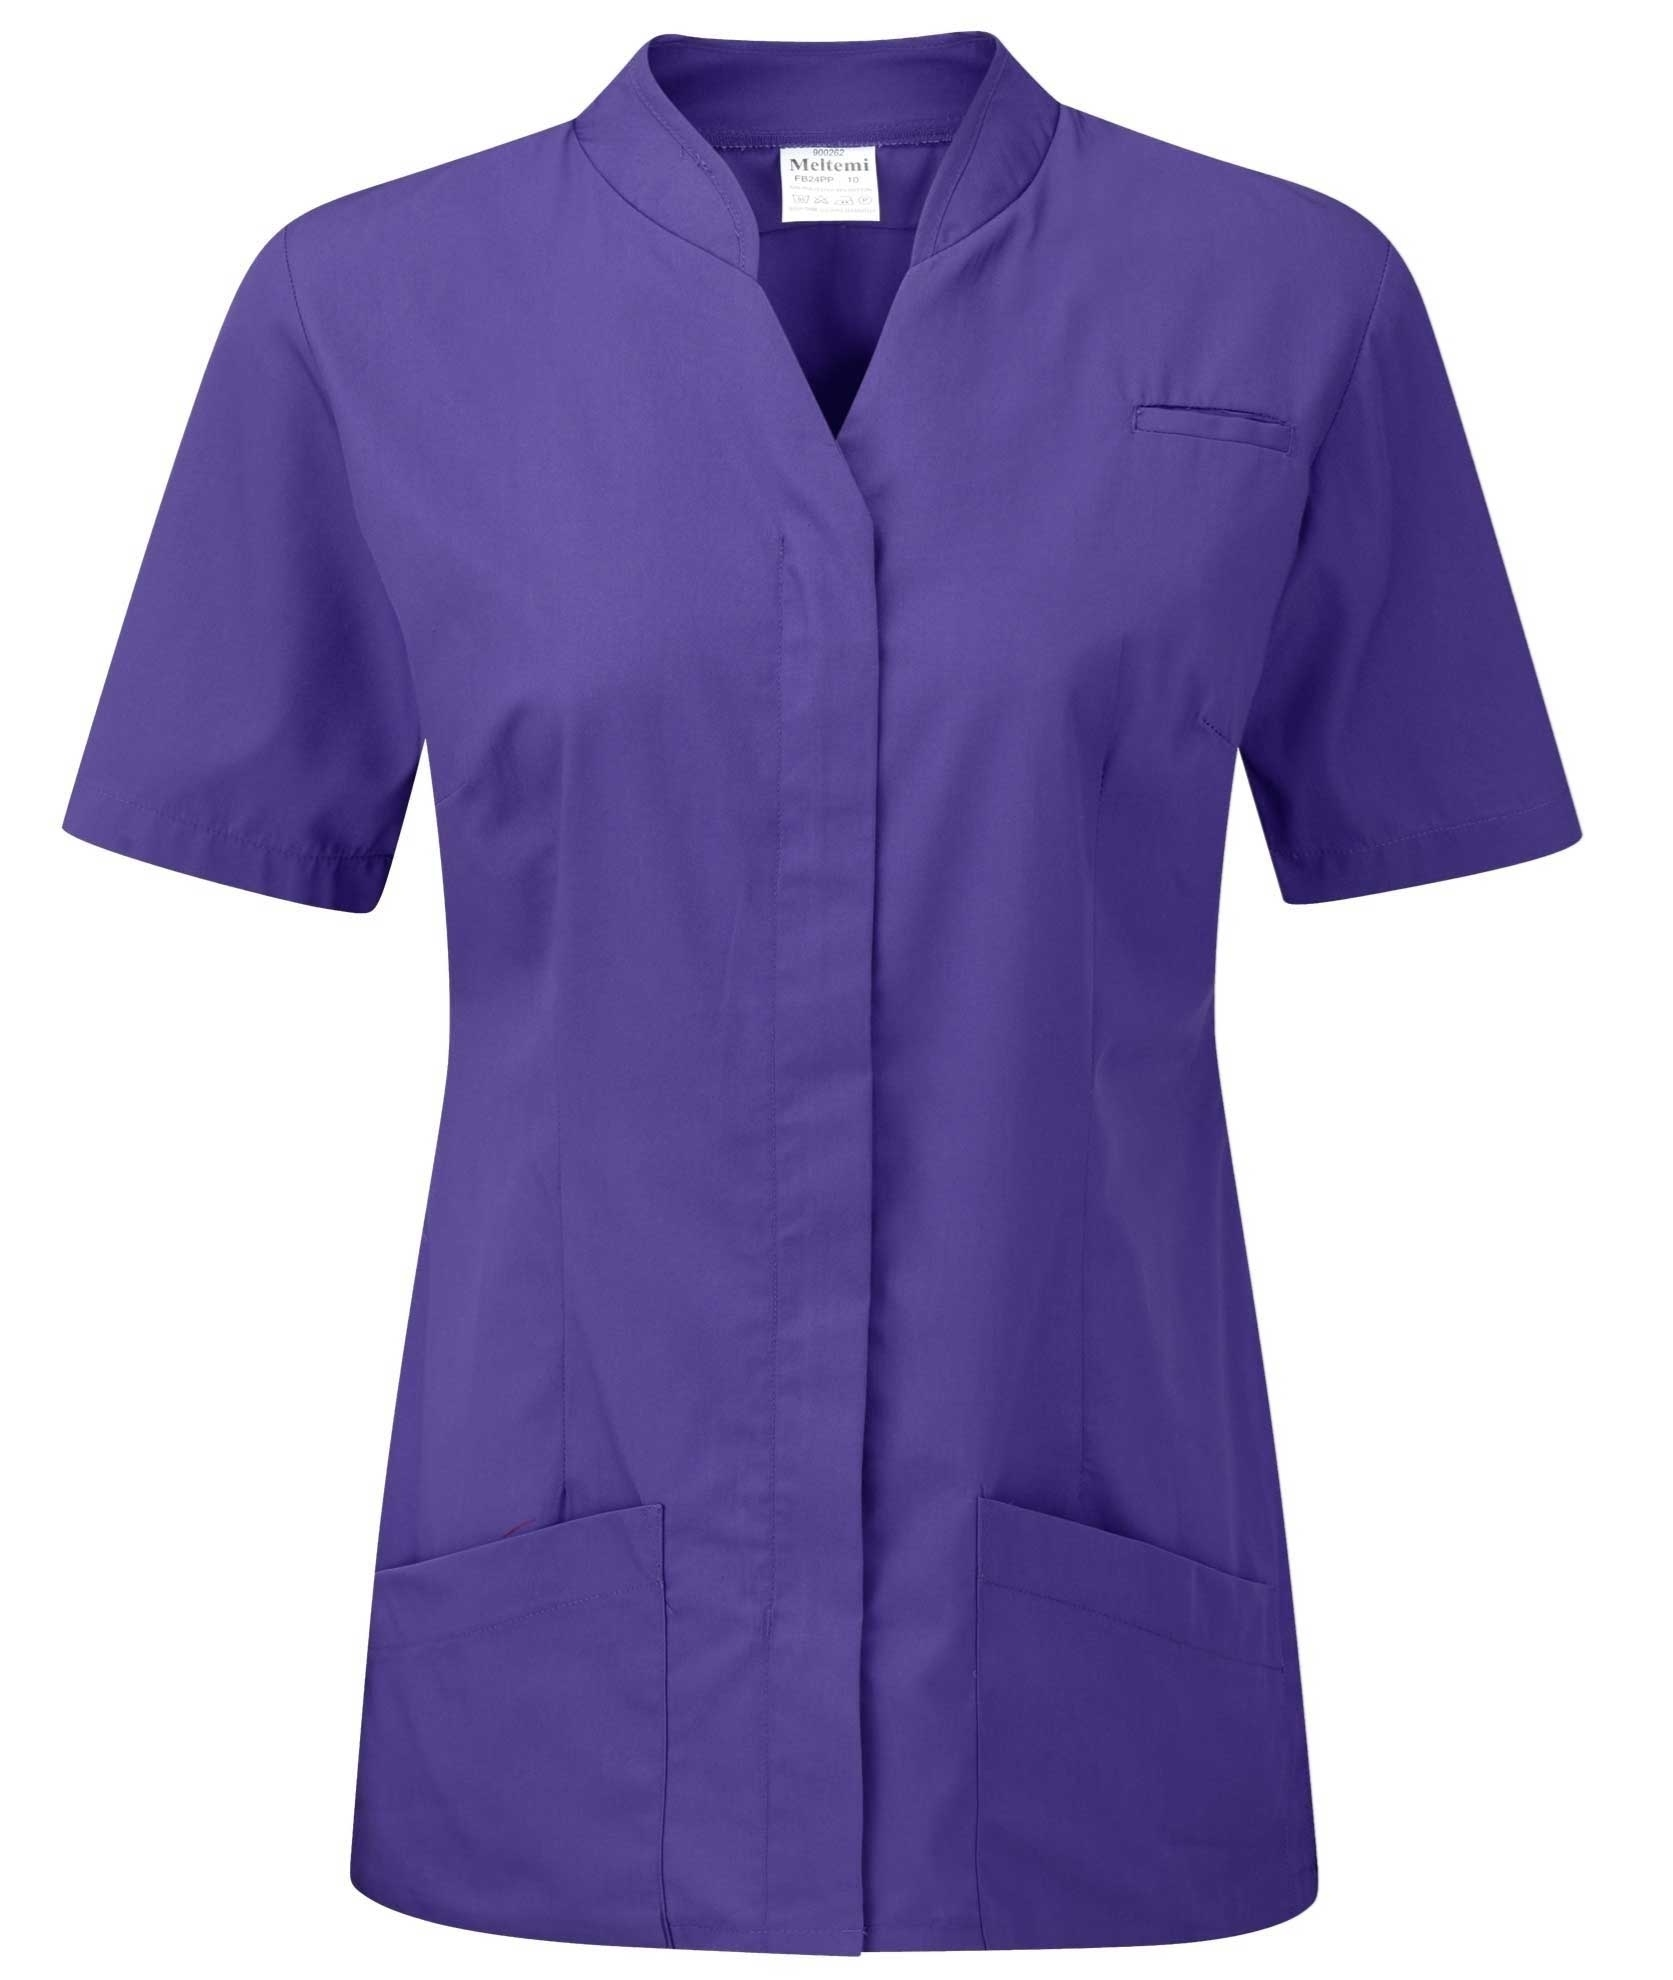 Picture of Polycotton Top - Purple